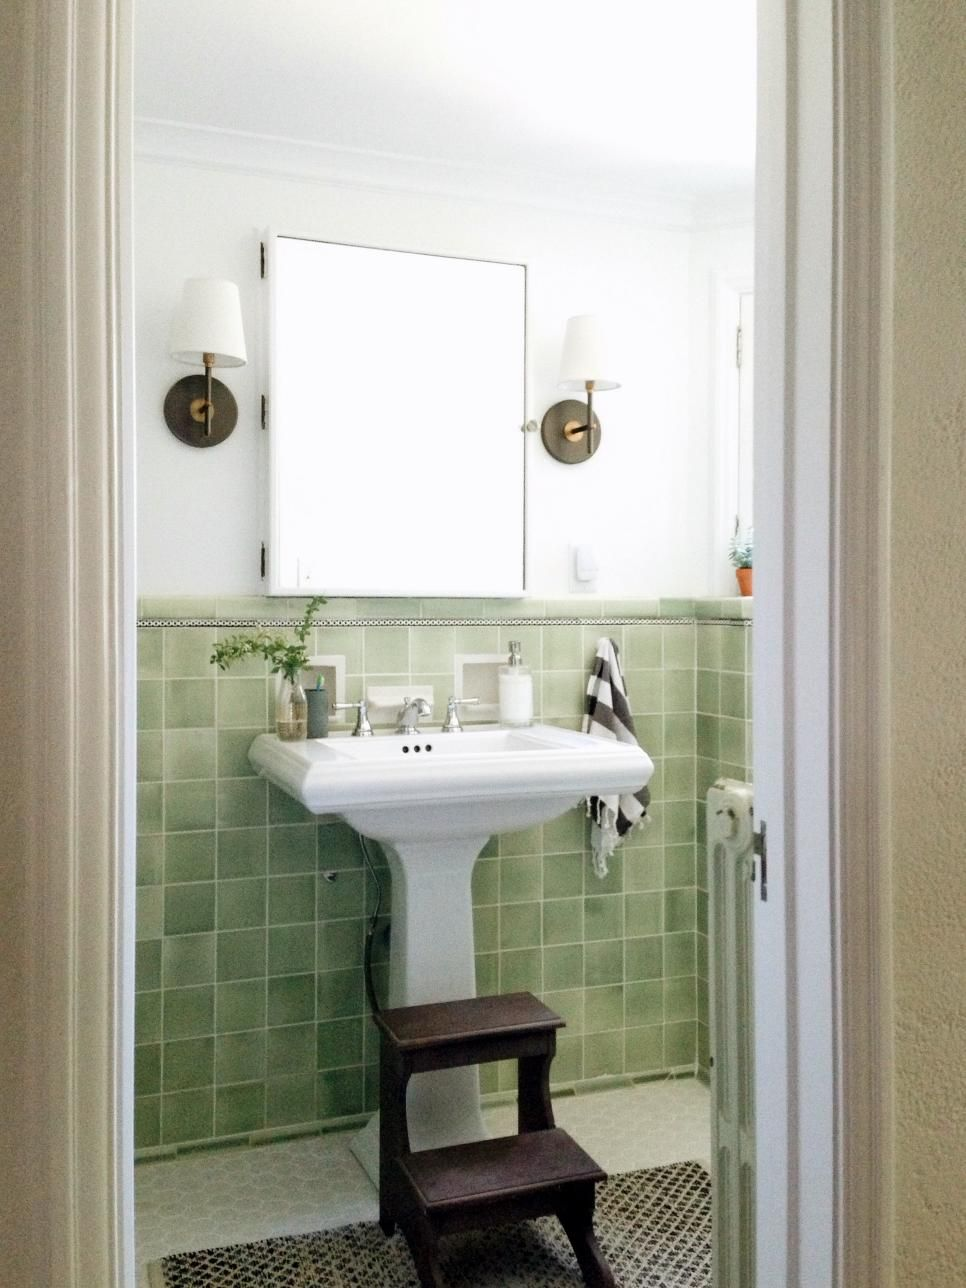 Small Bathroom Ideas On A Budget  Higher Design Hgtv And Budgeting Glamorous Updating A Small Bathroom On A Budget Review